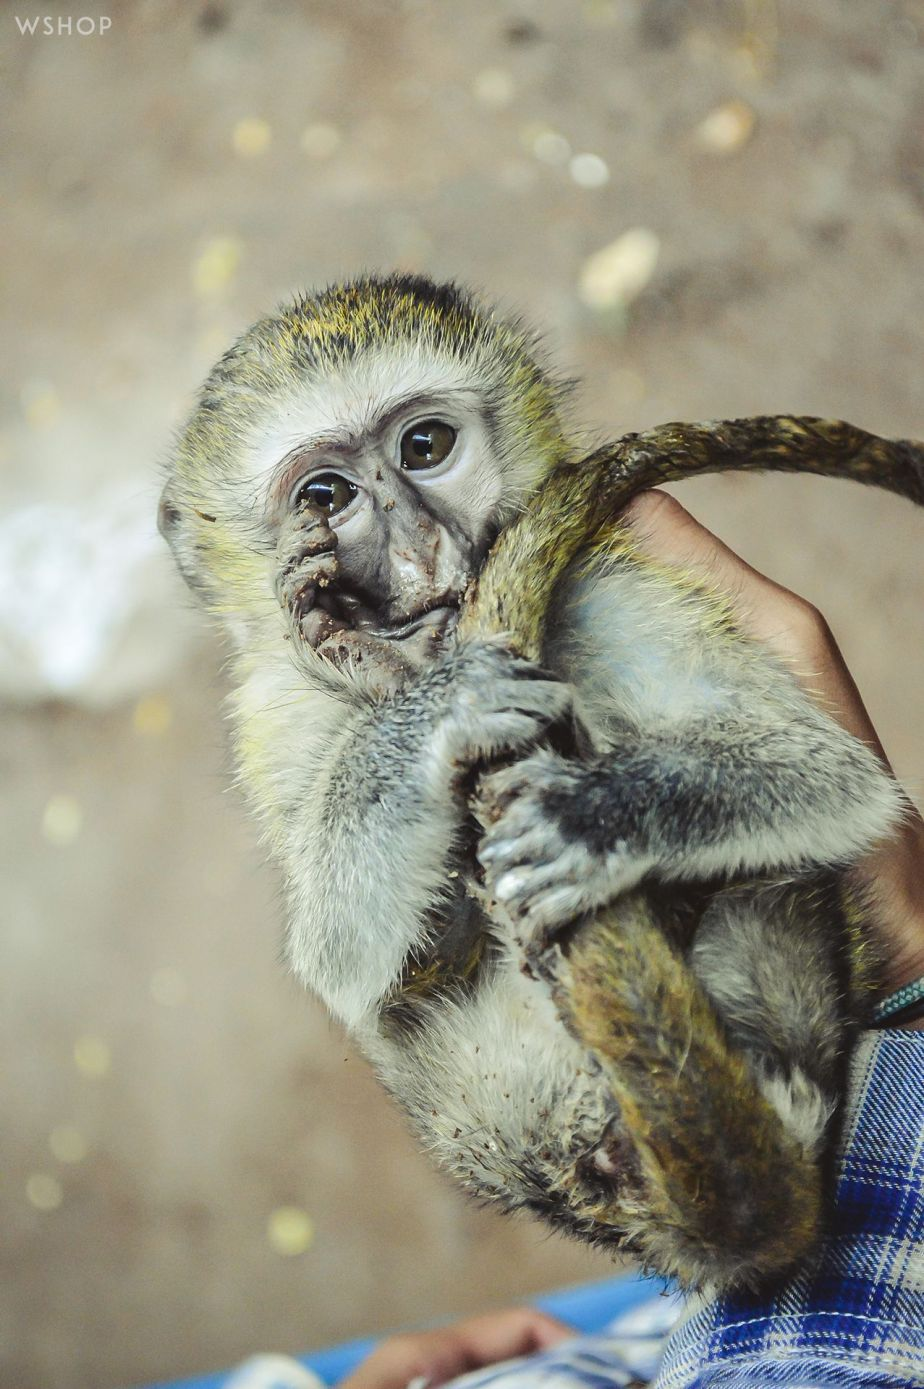 A young female monkey